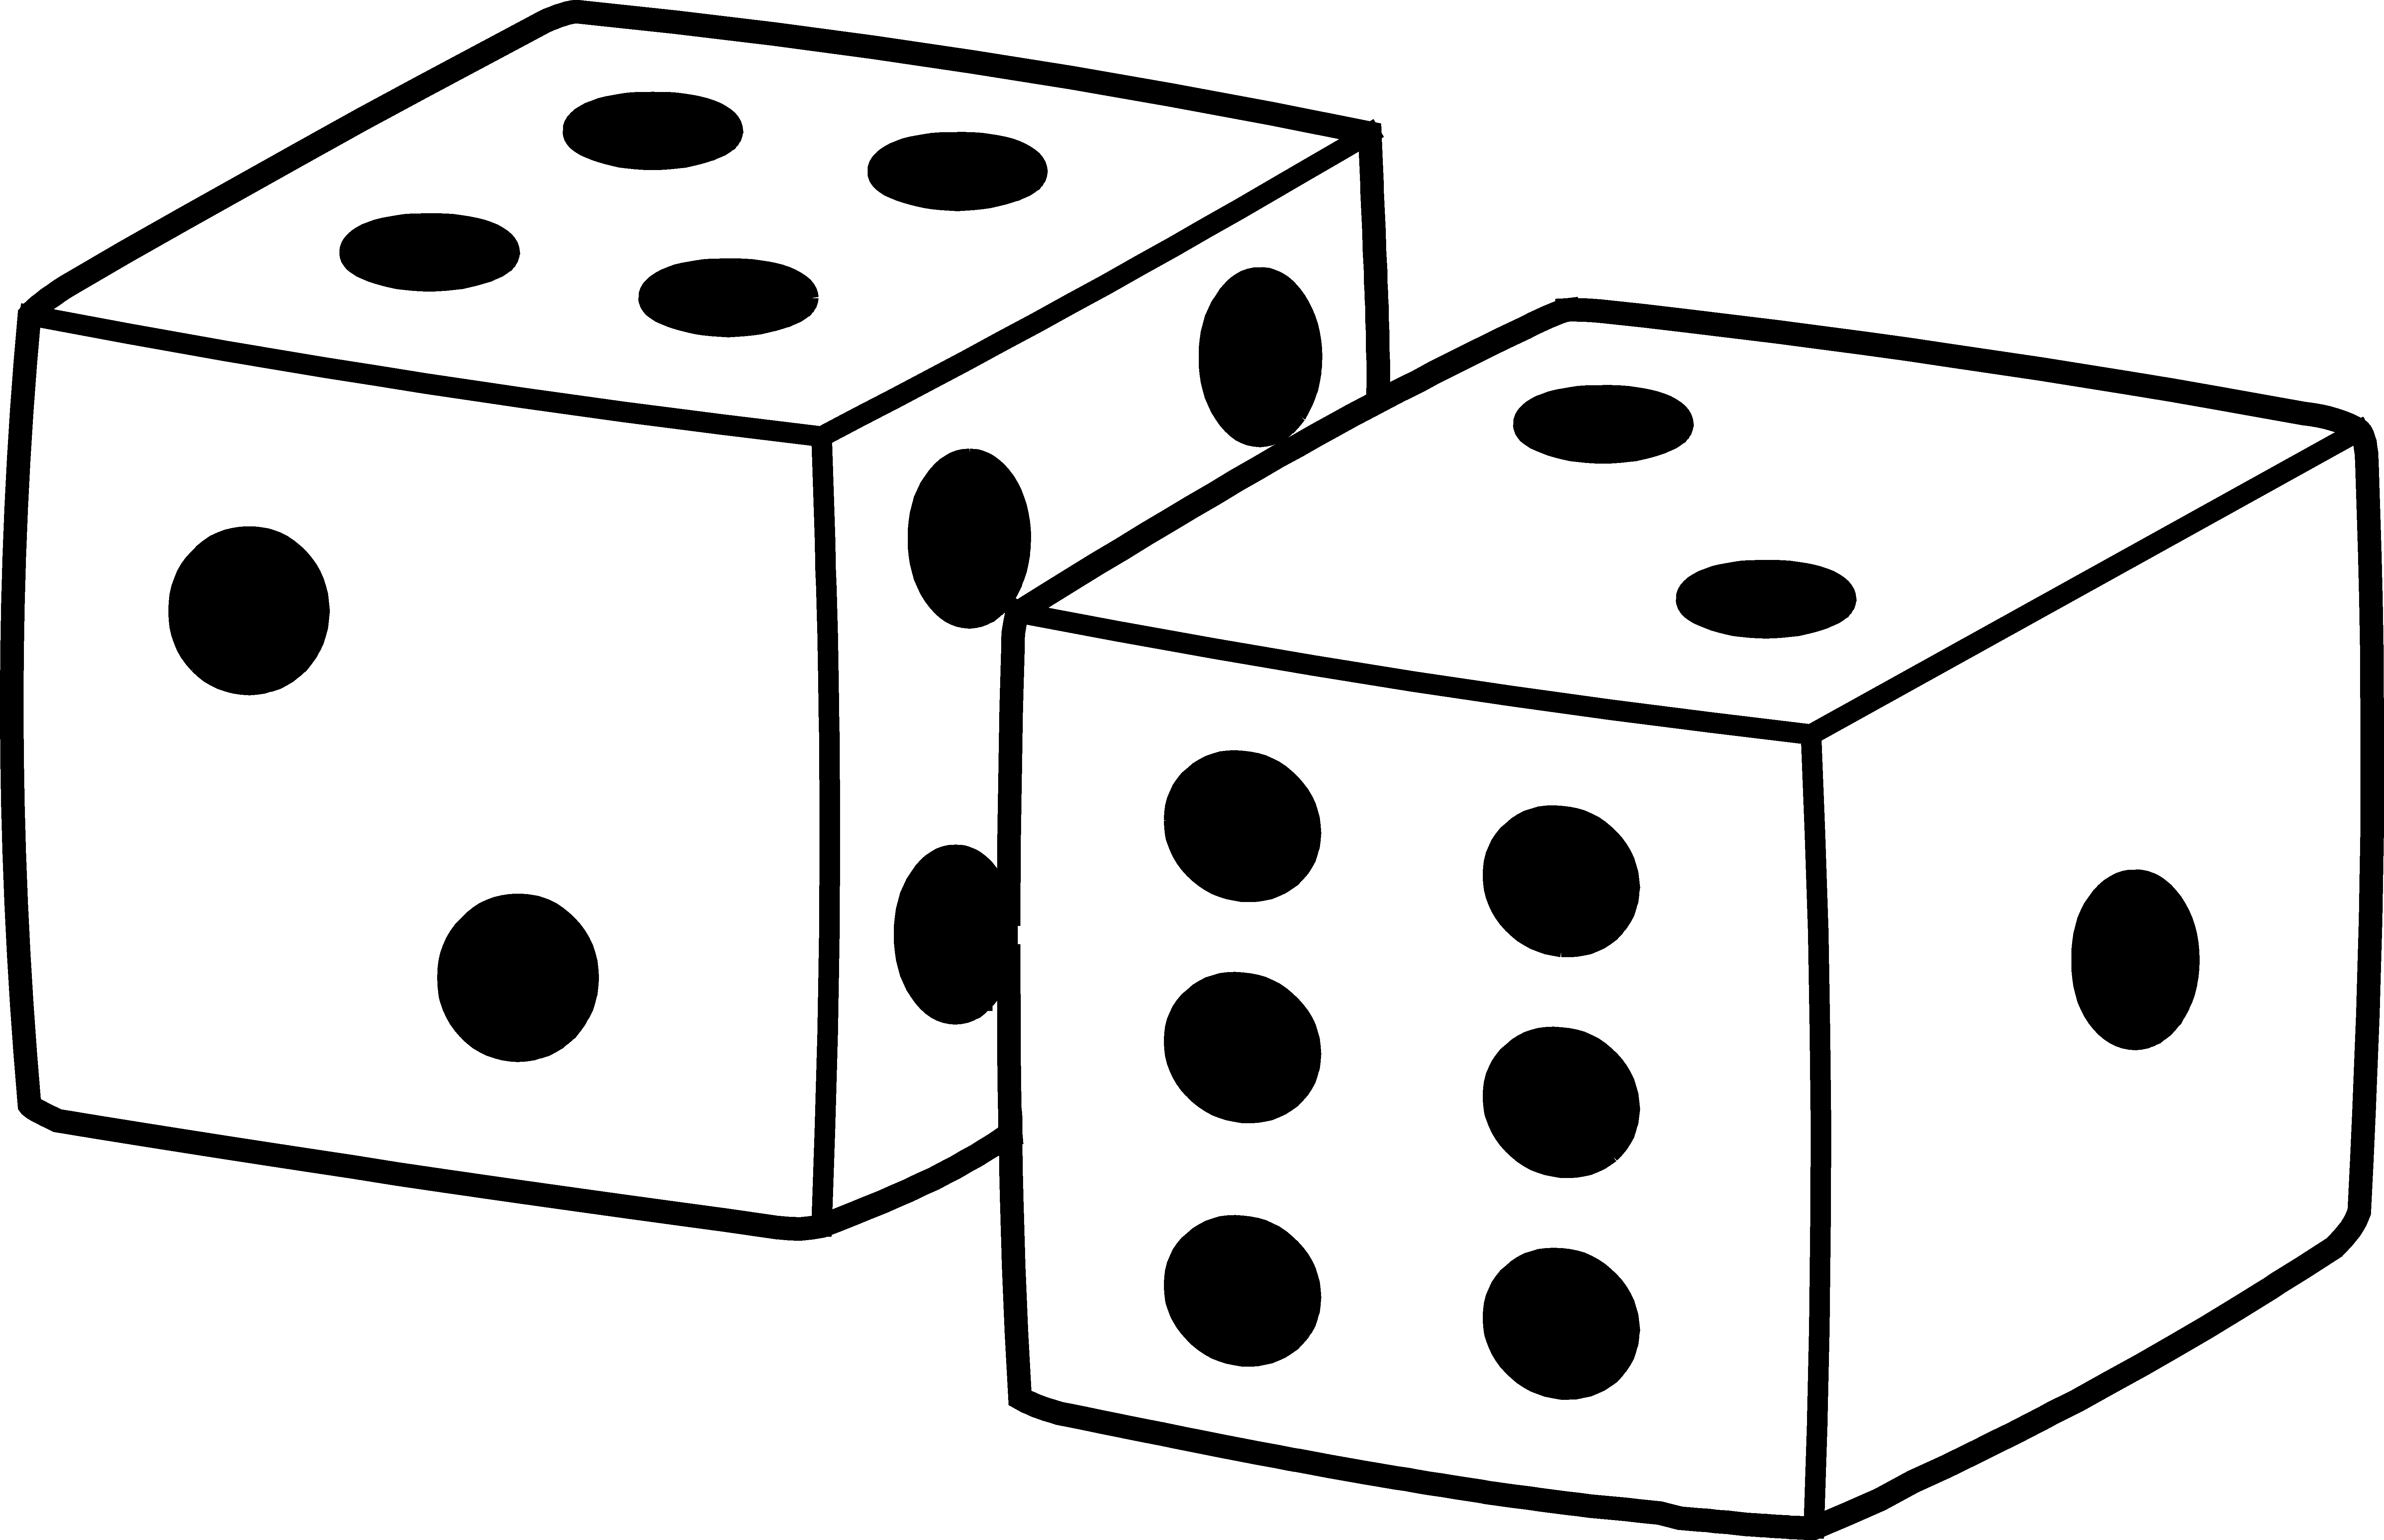 Free dice clipart graphic library download Free Dice Images Free, Download Free Clip Art, Free Clip Art on ... graphic library download